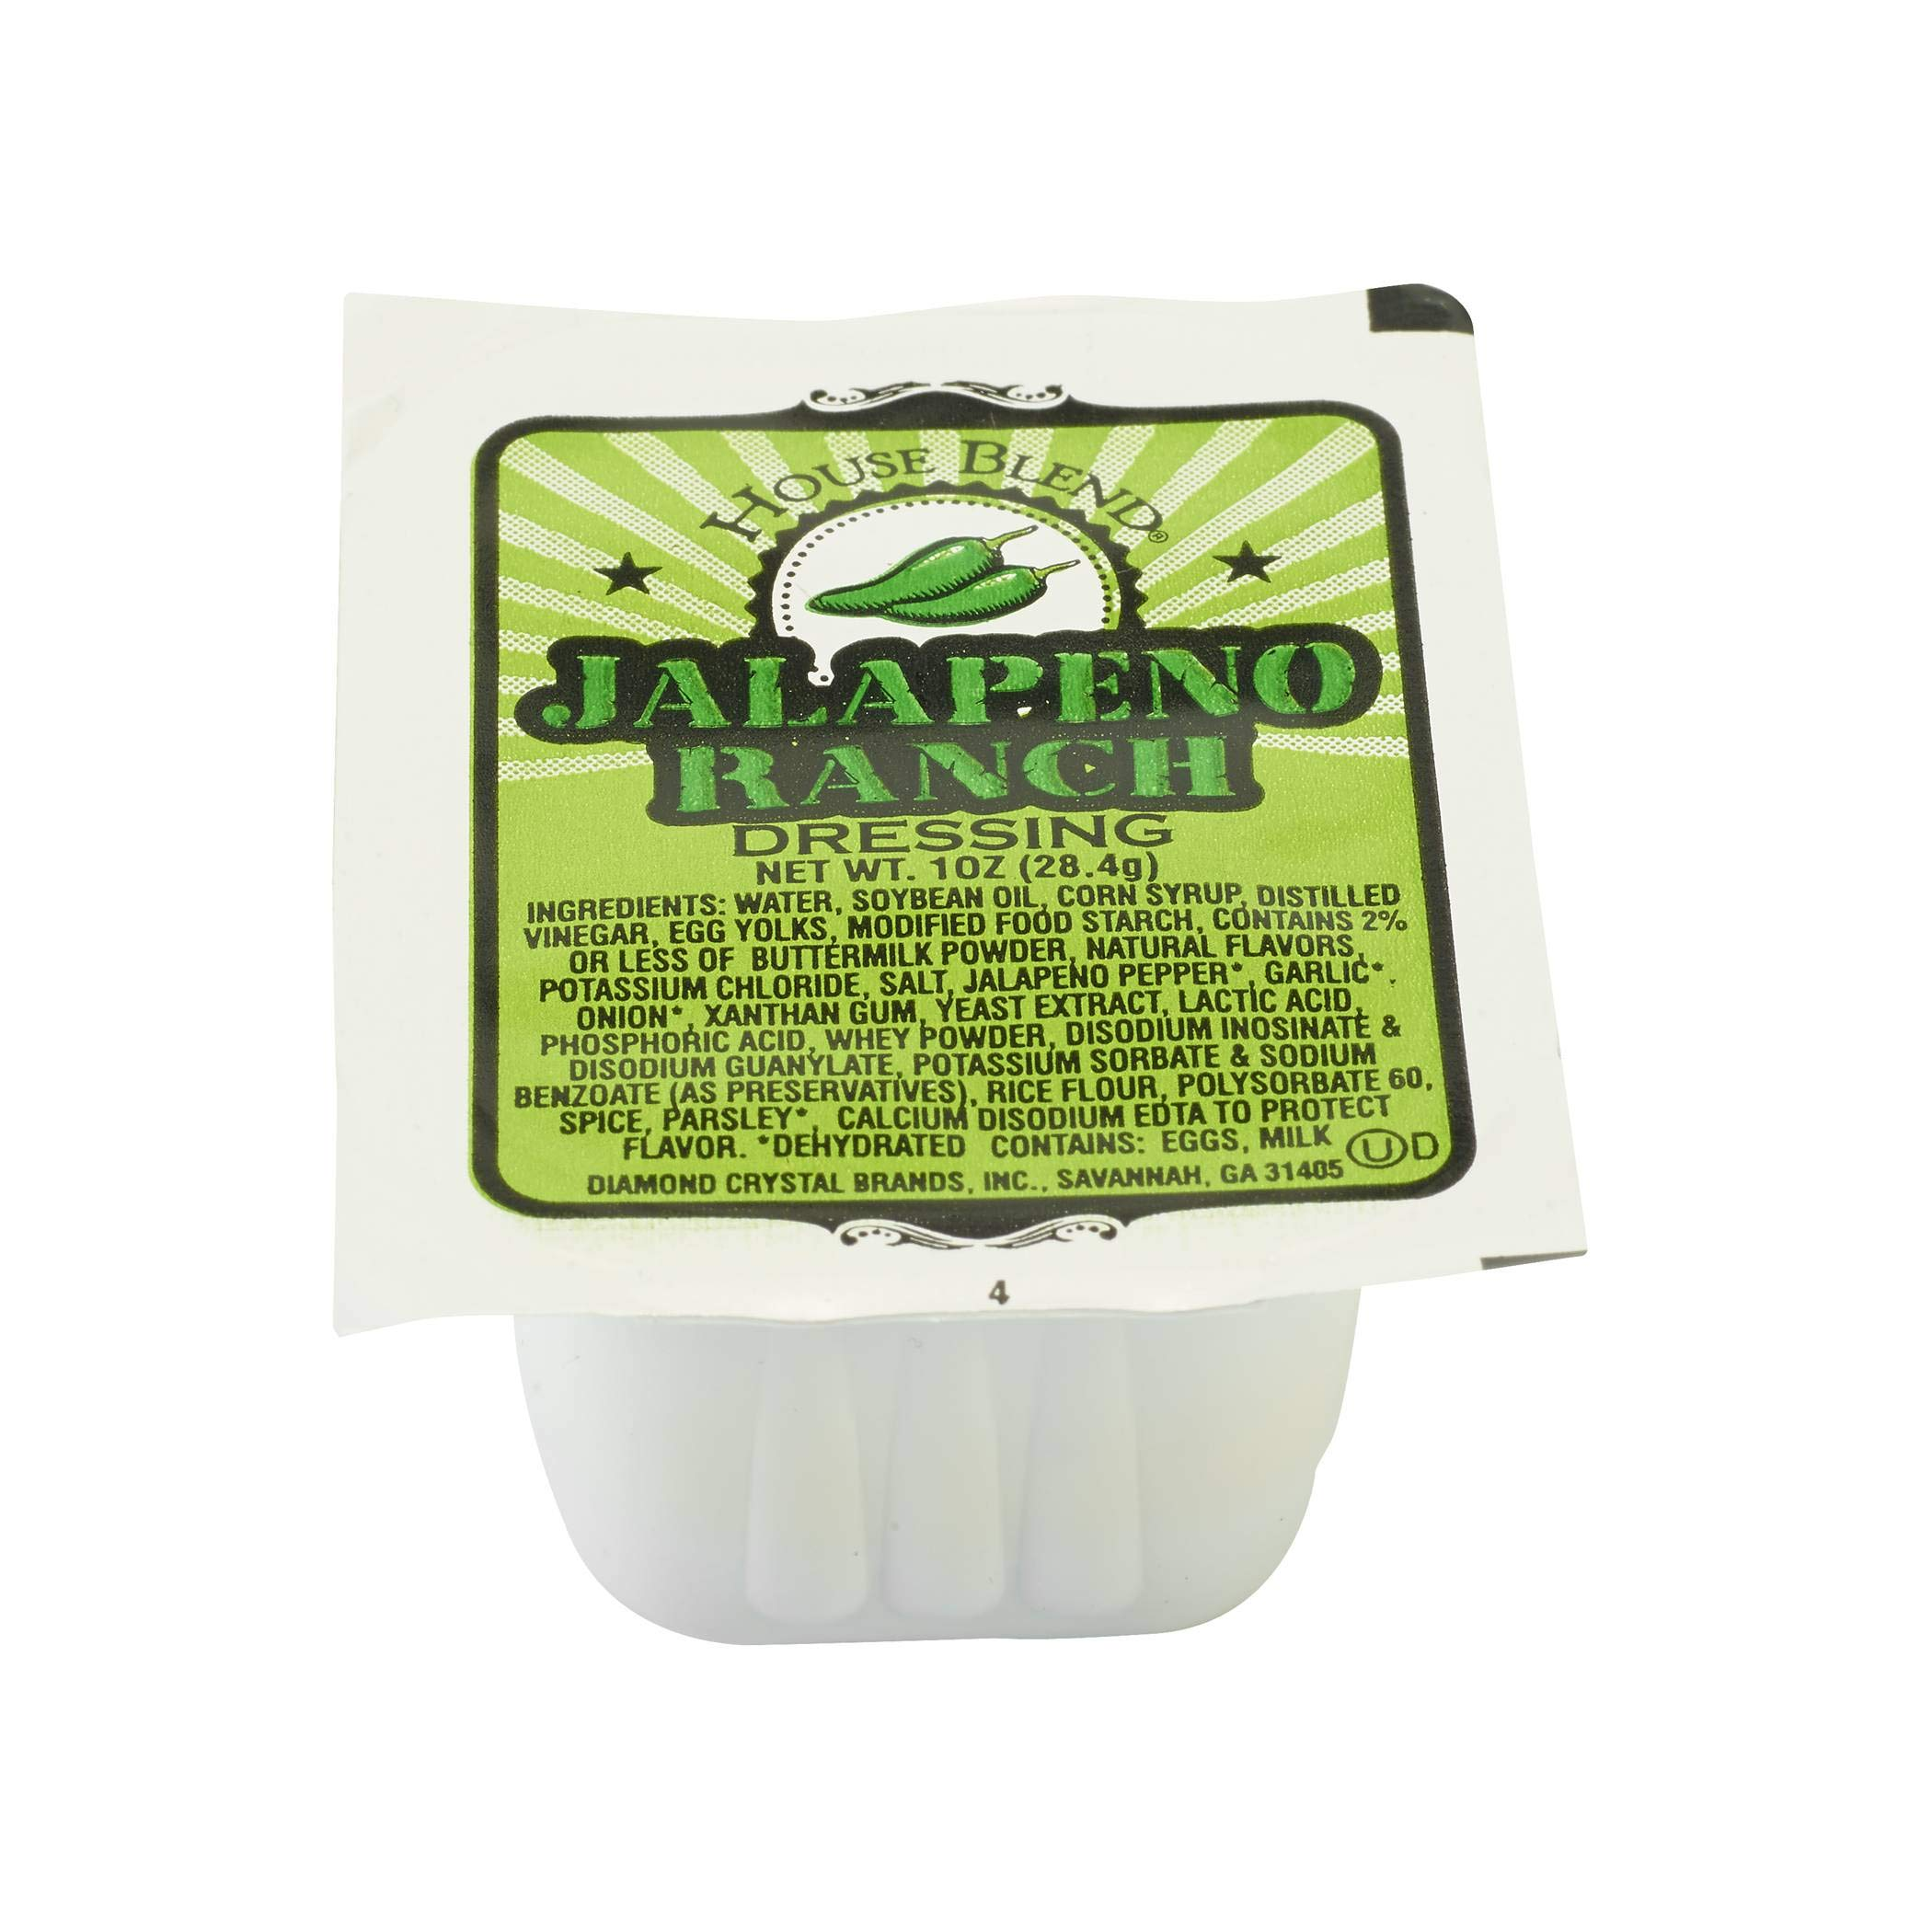 House Blend Light Jalapeno Ranch Dipping Sauce, 1 Ounce - 100 per case. by Diamond Crystal (Image #1)